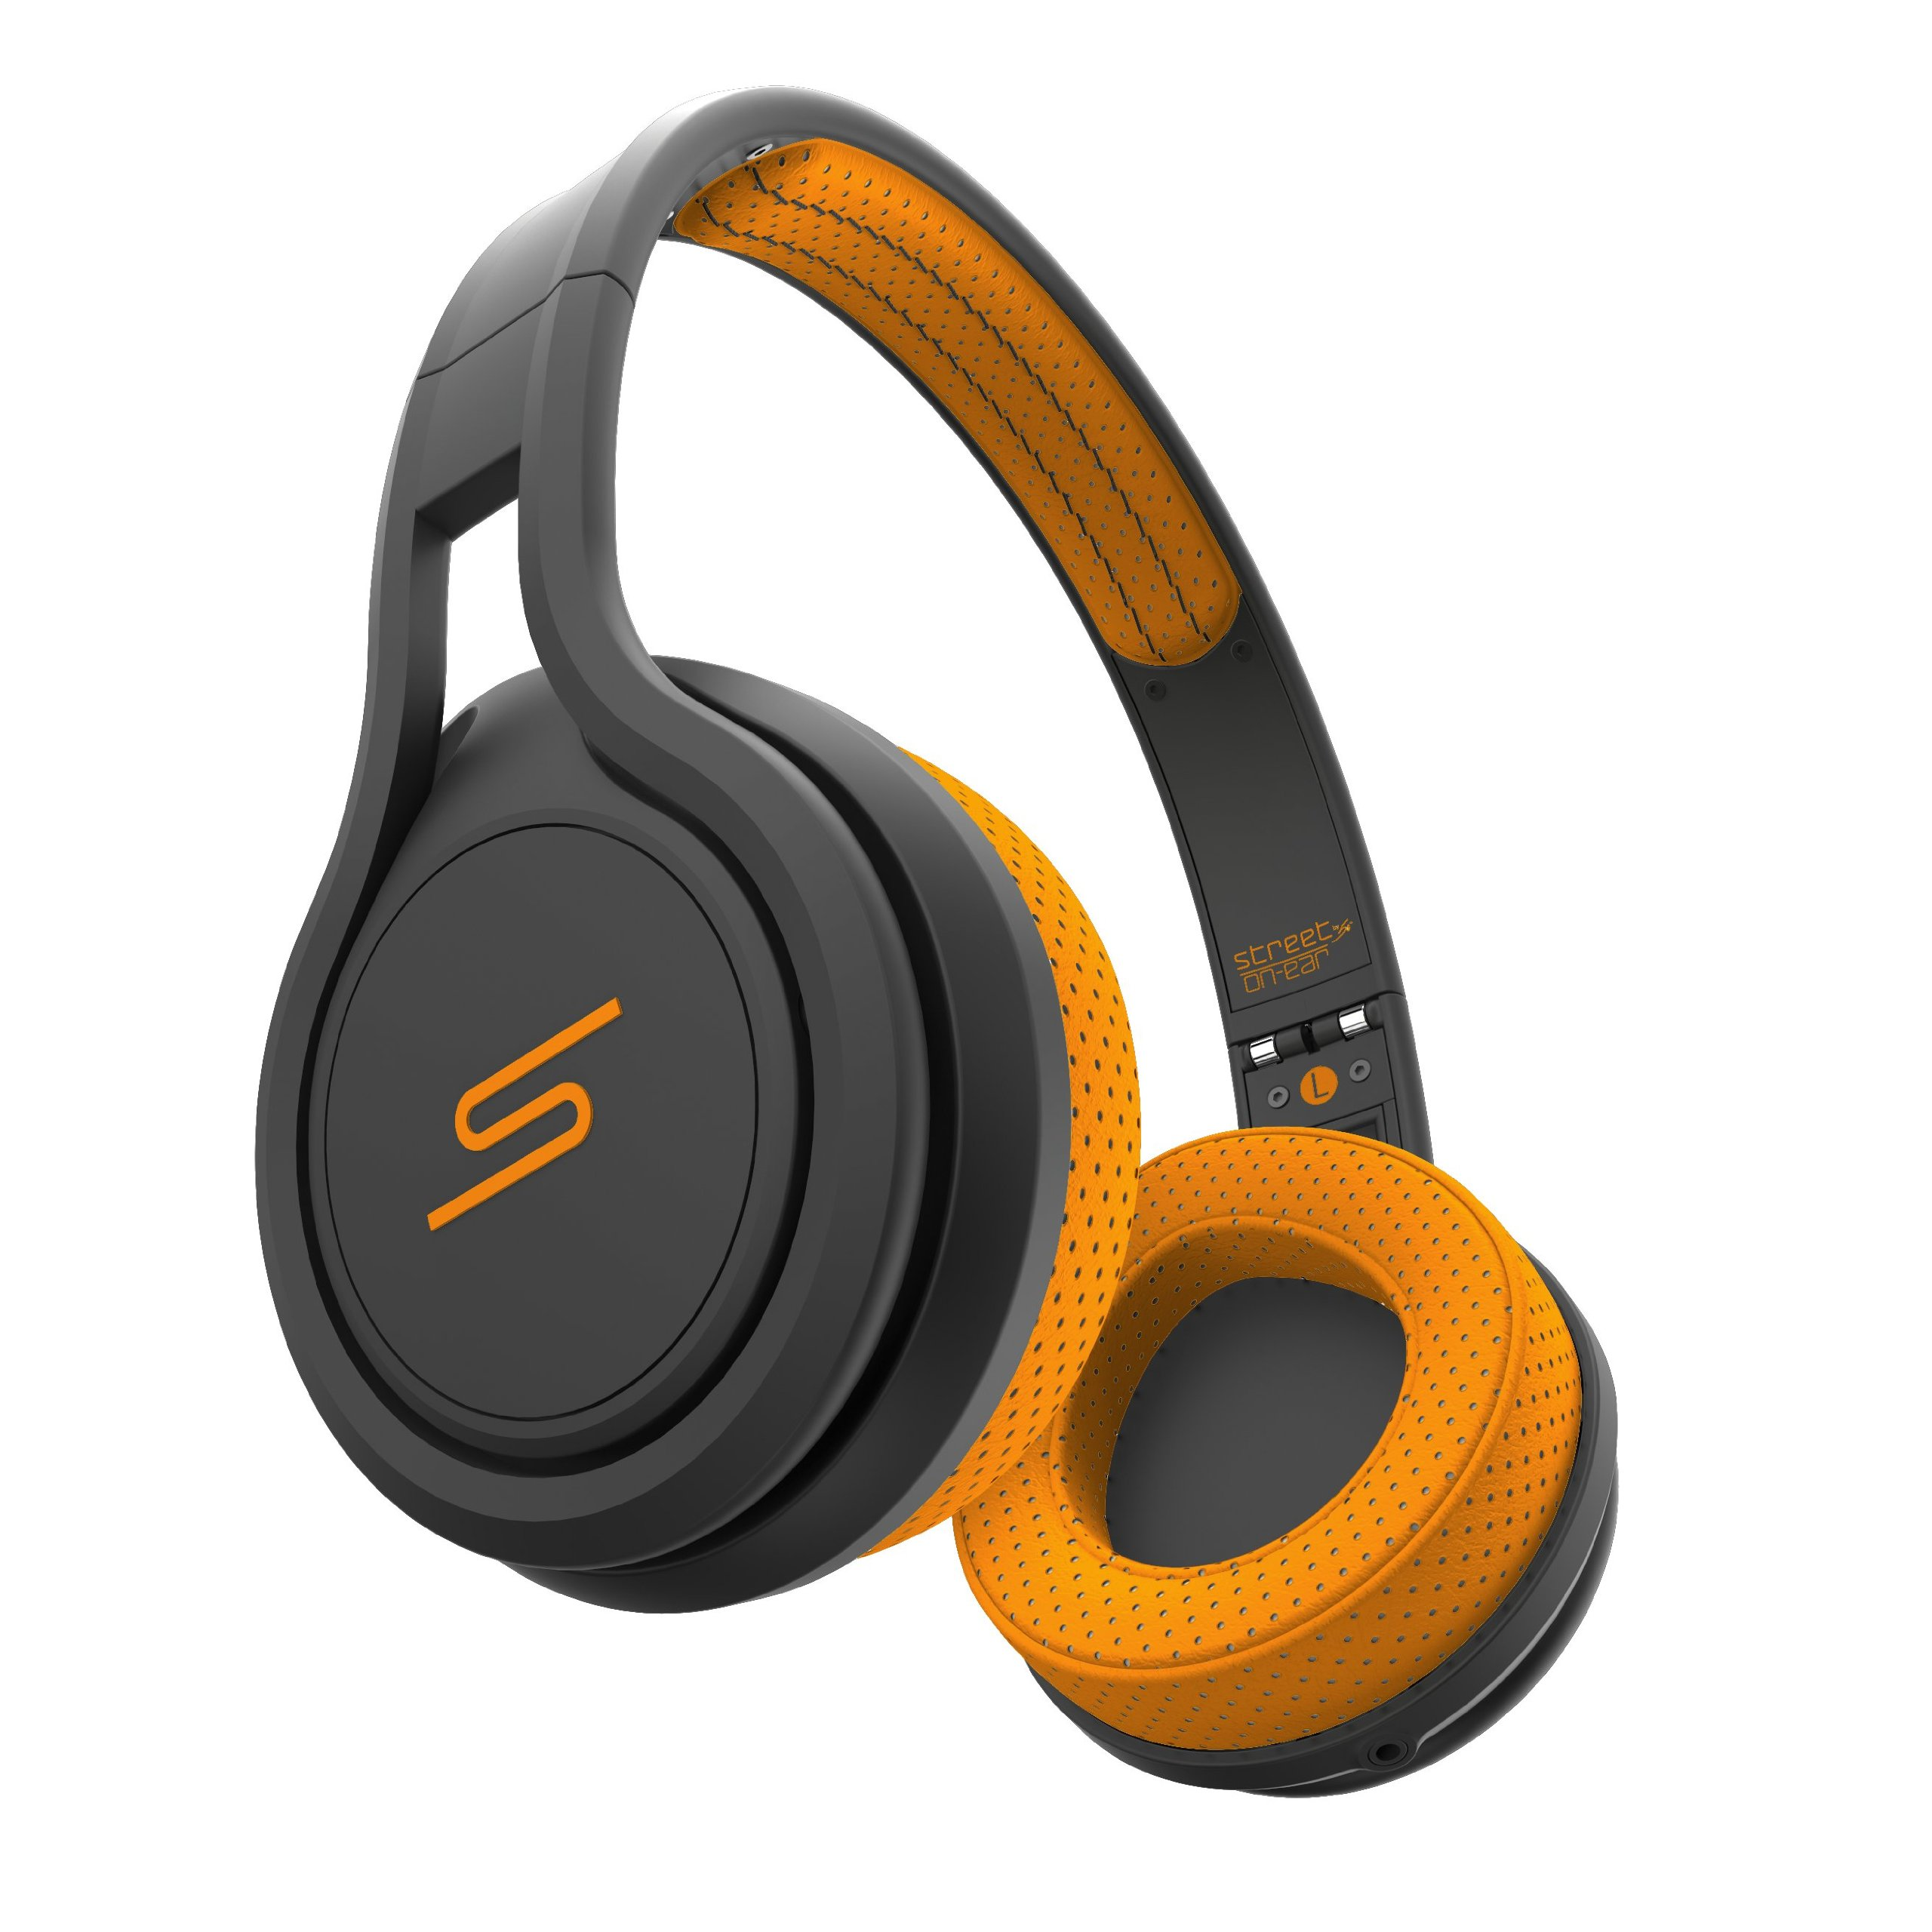 Sms Audio Street By 50 Headset - Stereo - Orange - Wired - Over-the-head - Binaural - Circumaural (sms-onwd-sprt-org)